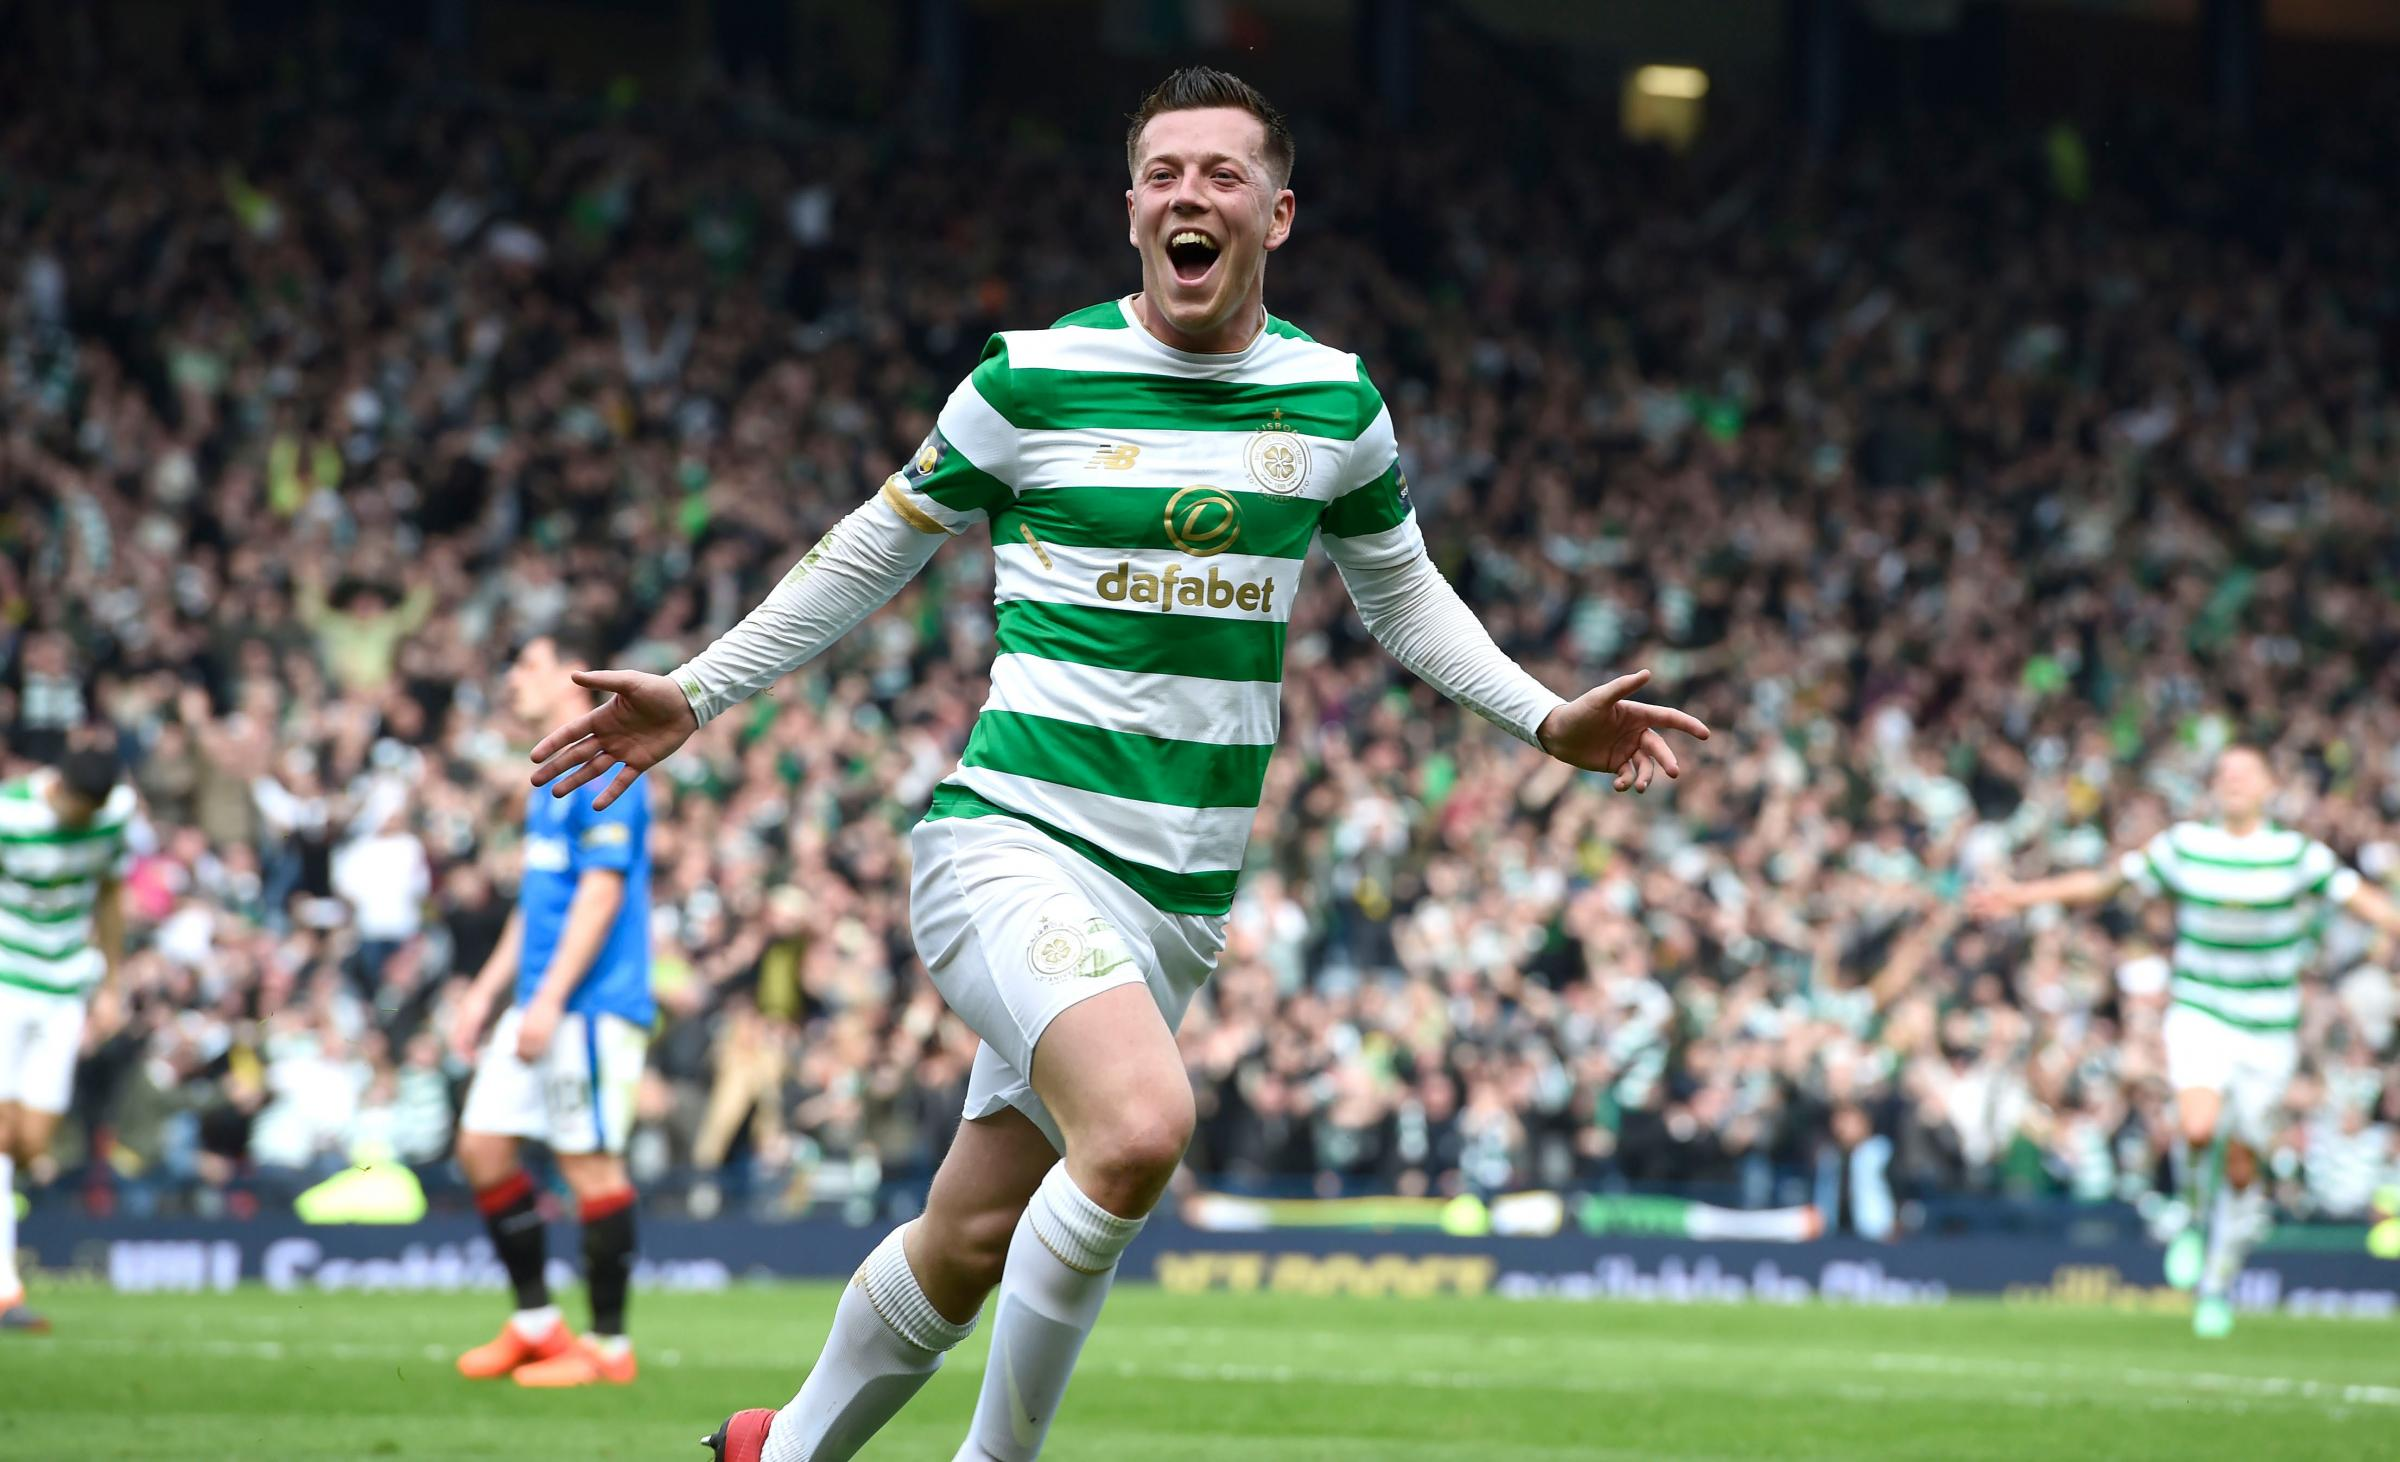 Celtic Thrash Rangers To Reach Scottish Cup Final